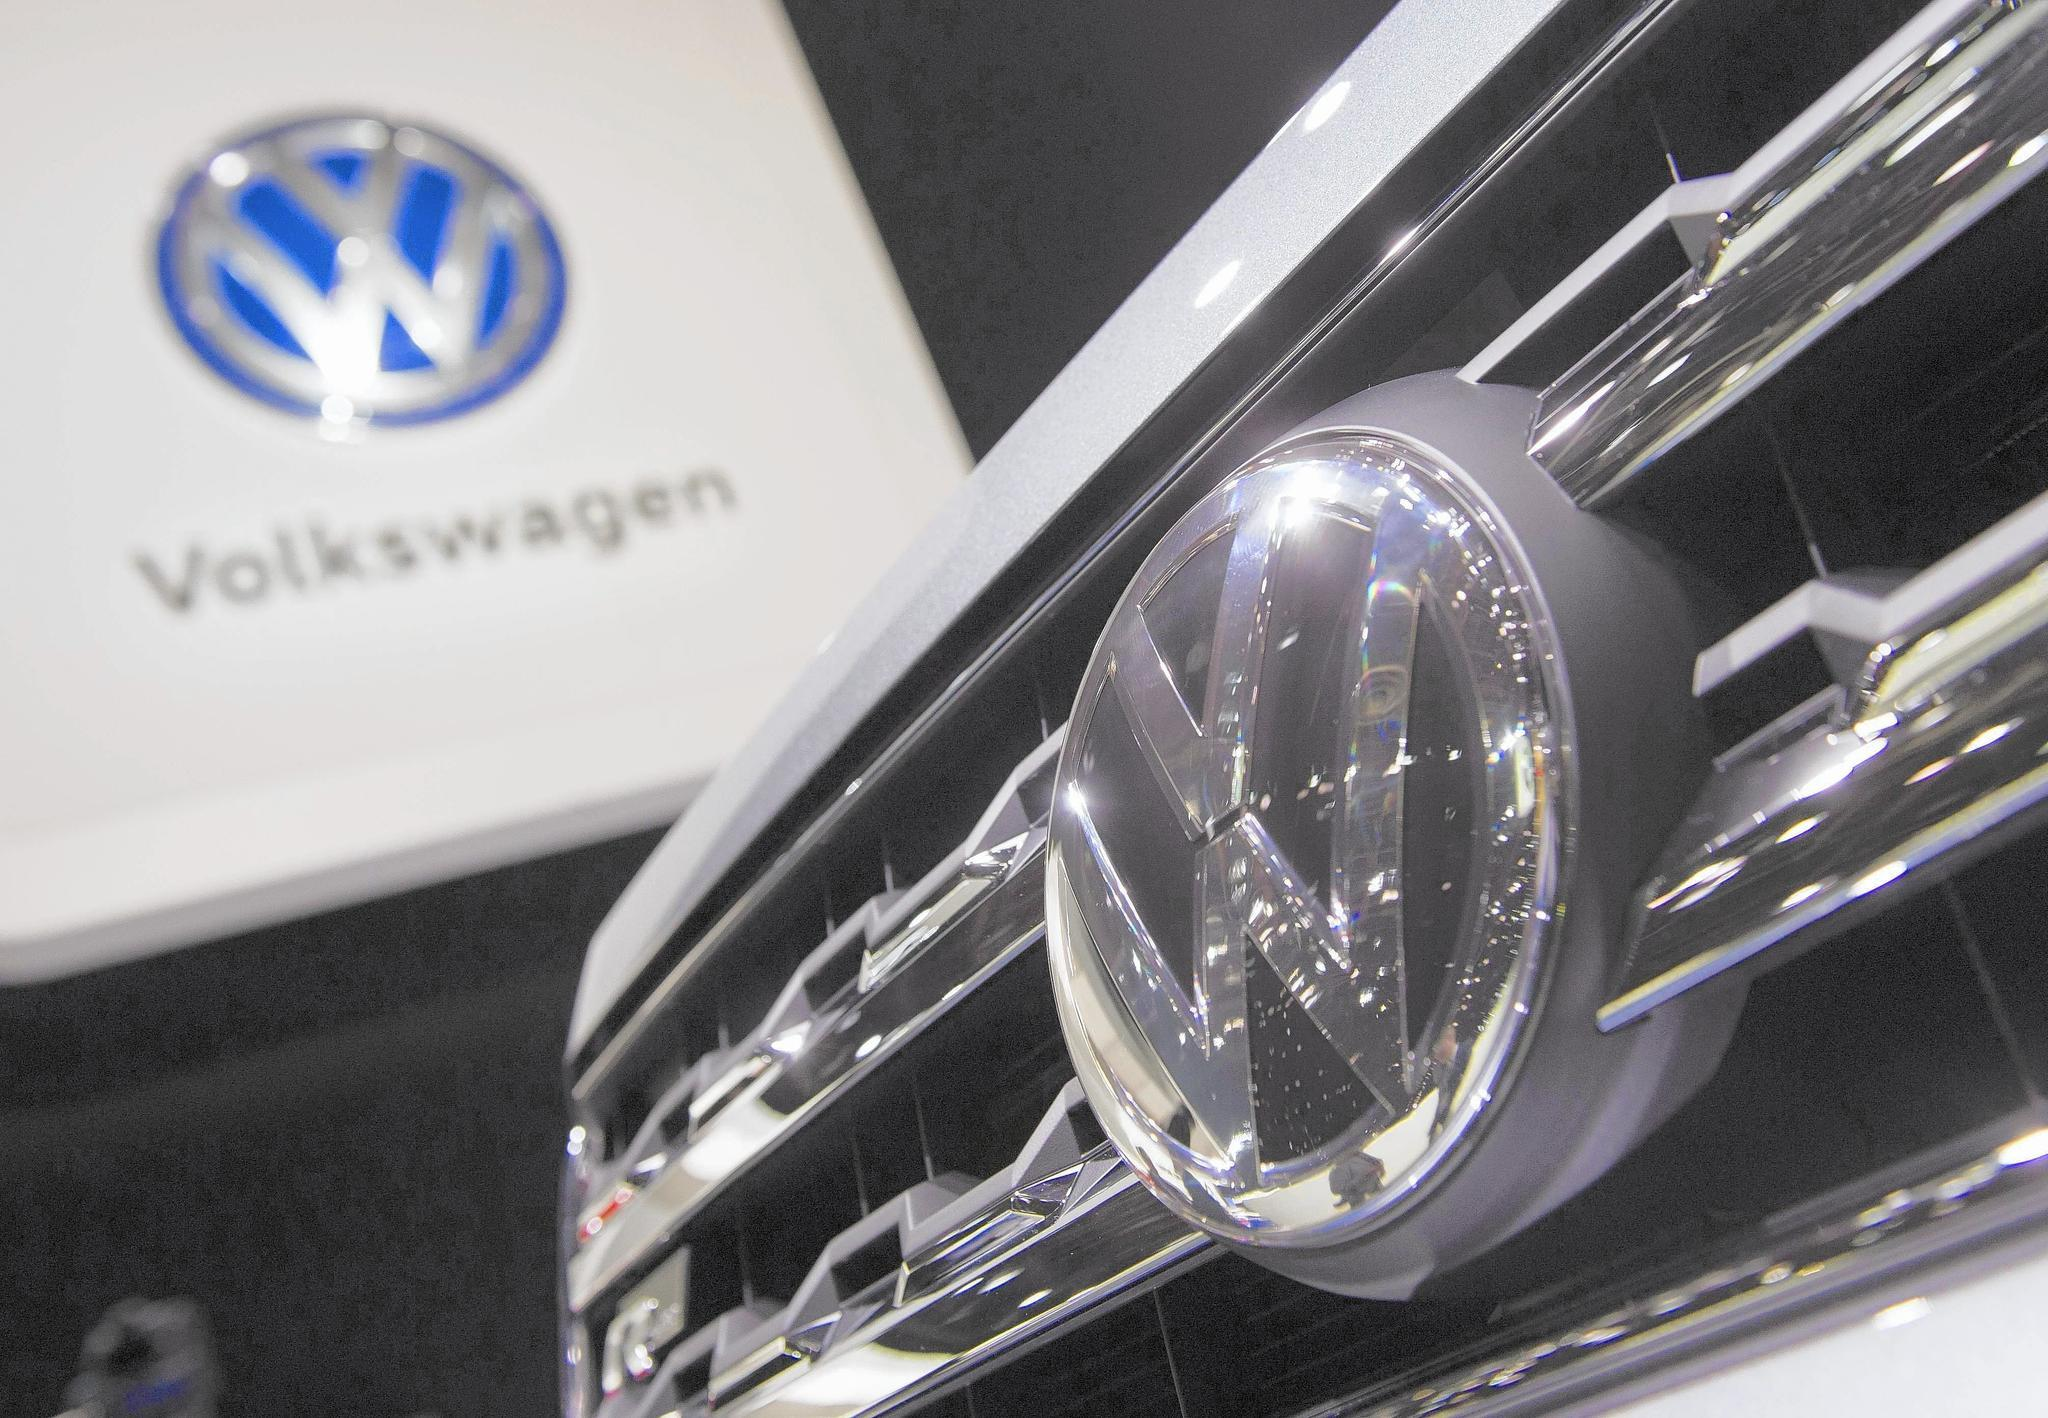 VW blowing smoke at customers stuck in sel scandal The Morning Call